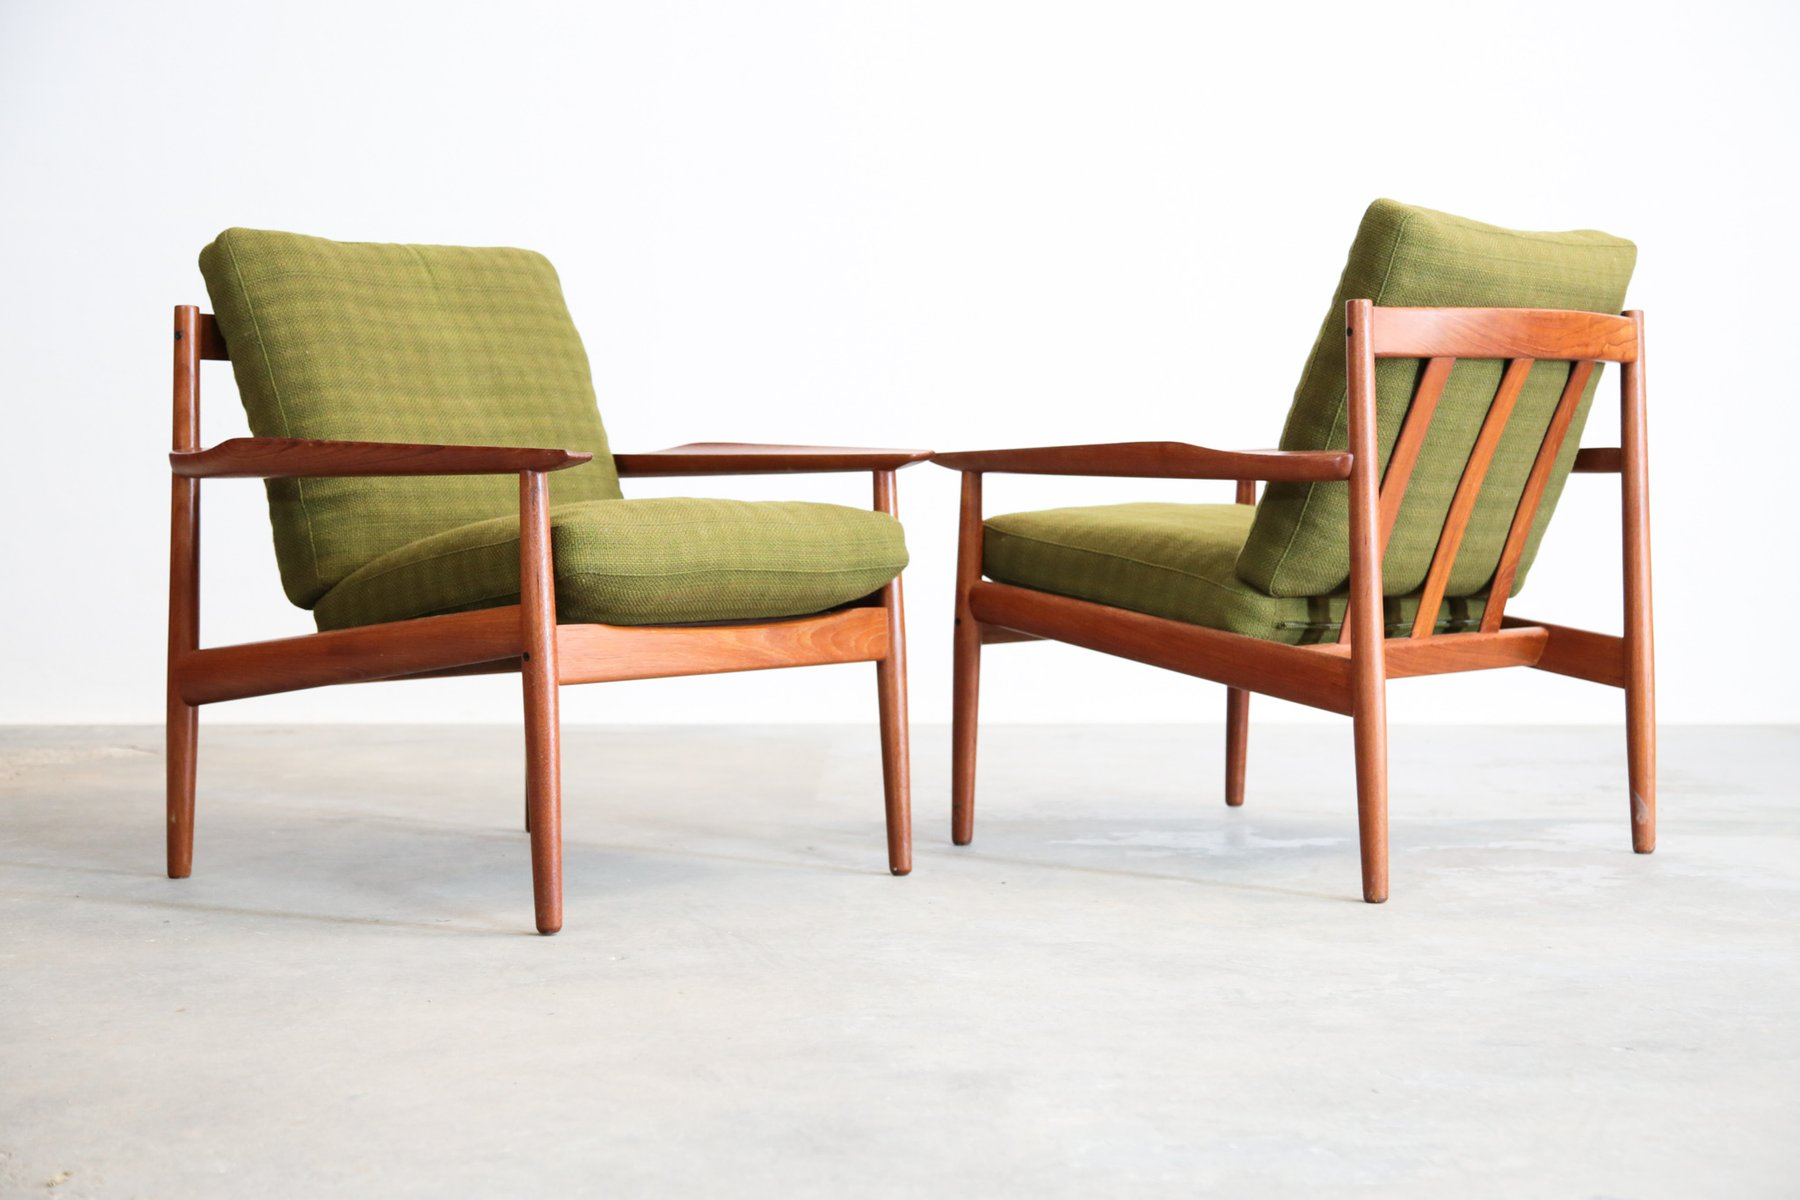 Scandinavian teak armchairs by arne vodder for glostrup for Furniture design classes nyc